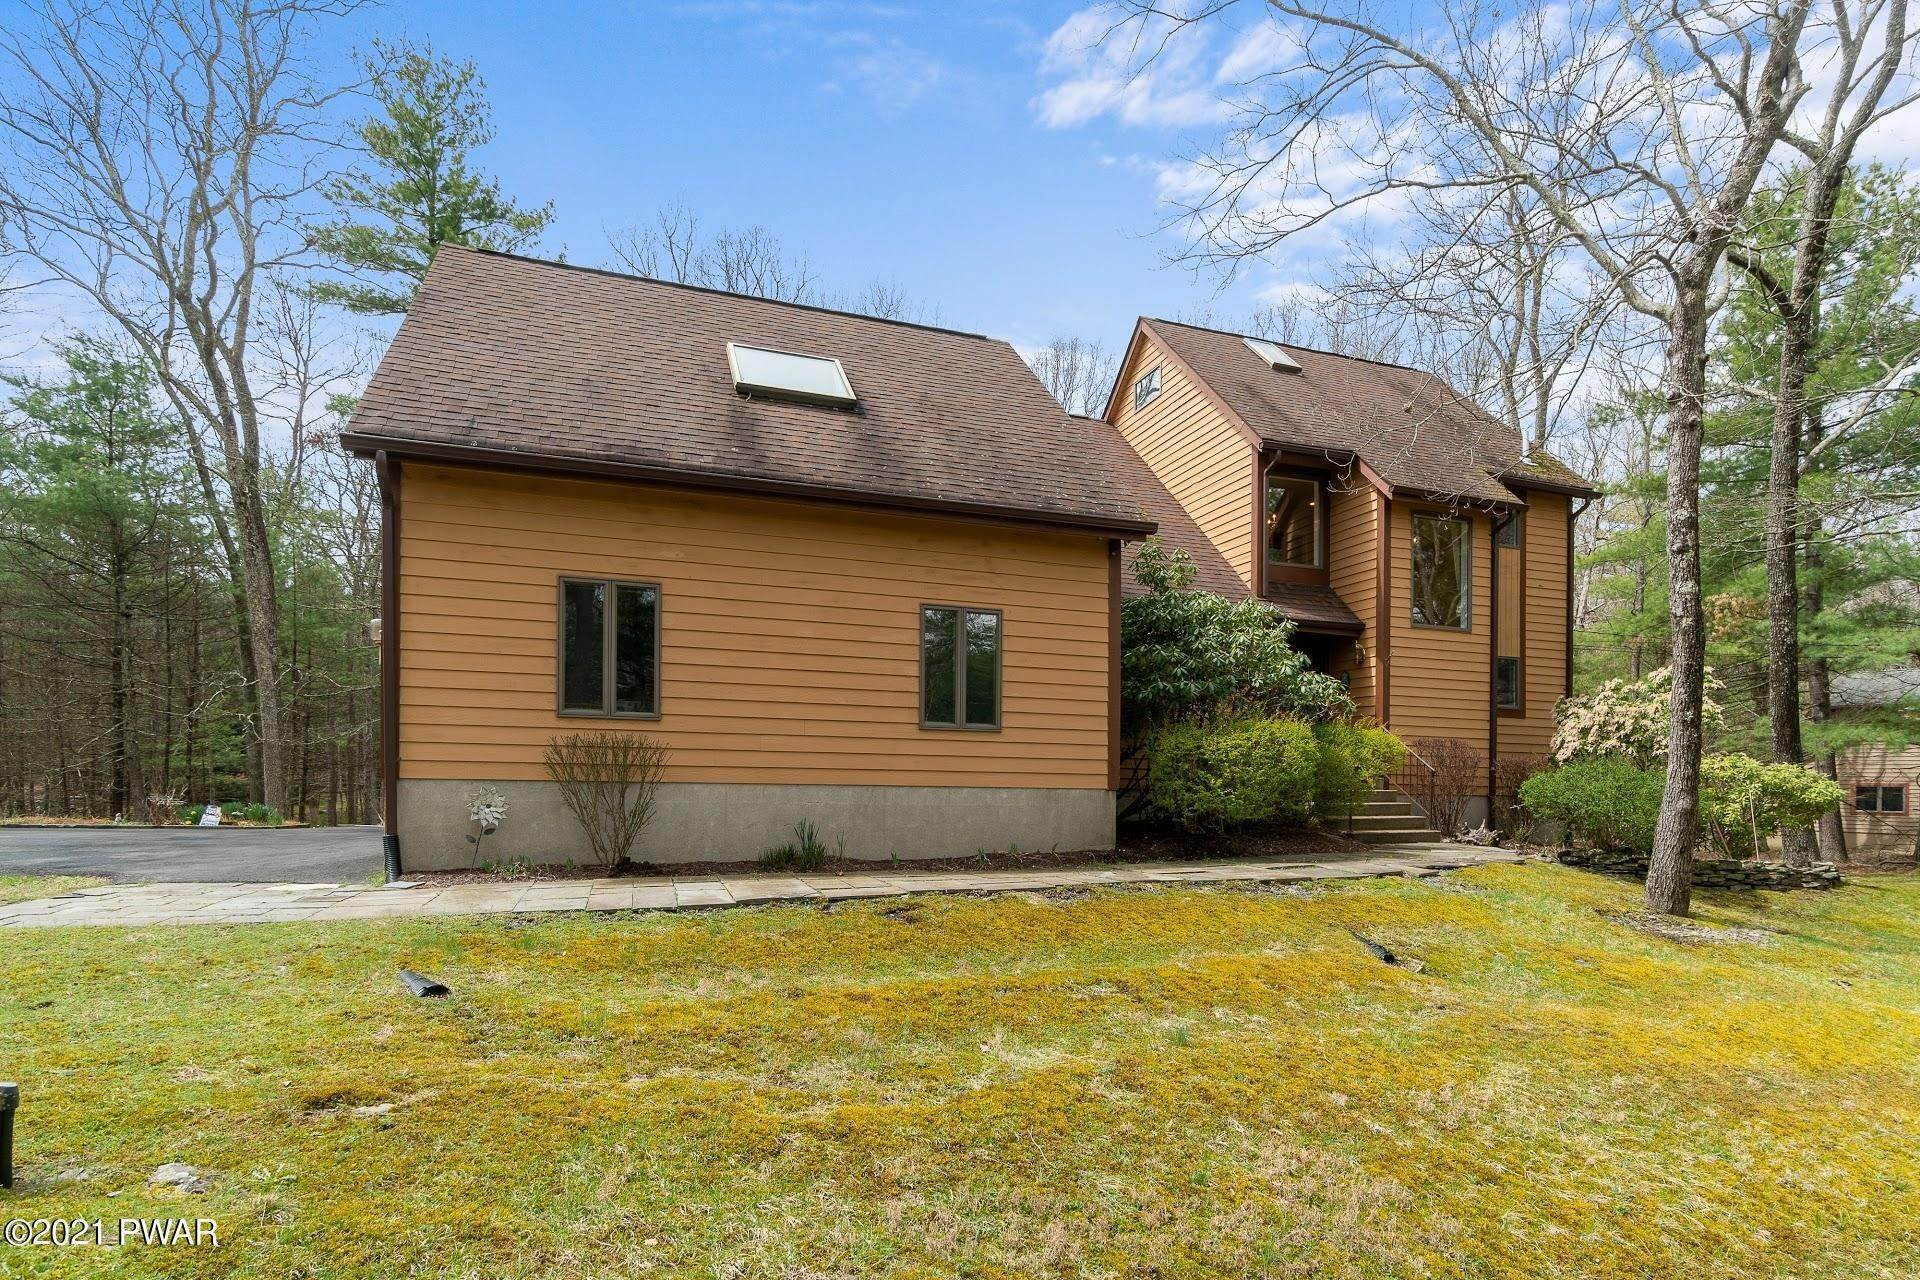 55. Single Family Homes for Sale at 103 Vesuvius Ln Milford, Pennsylvania 18337 United States